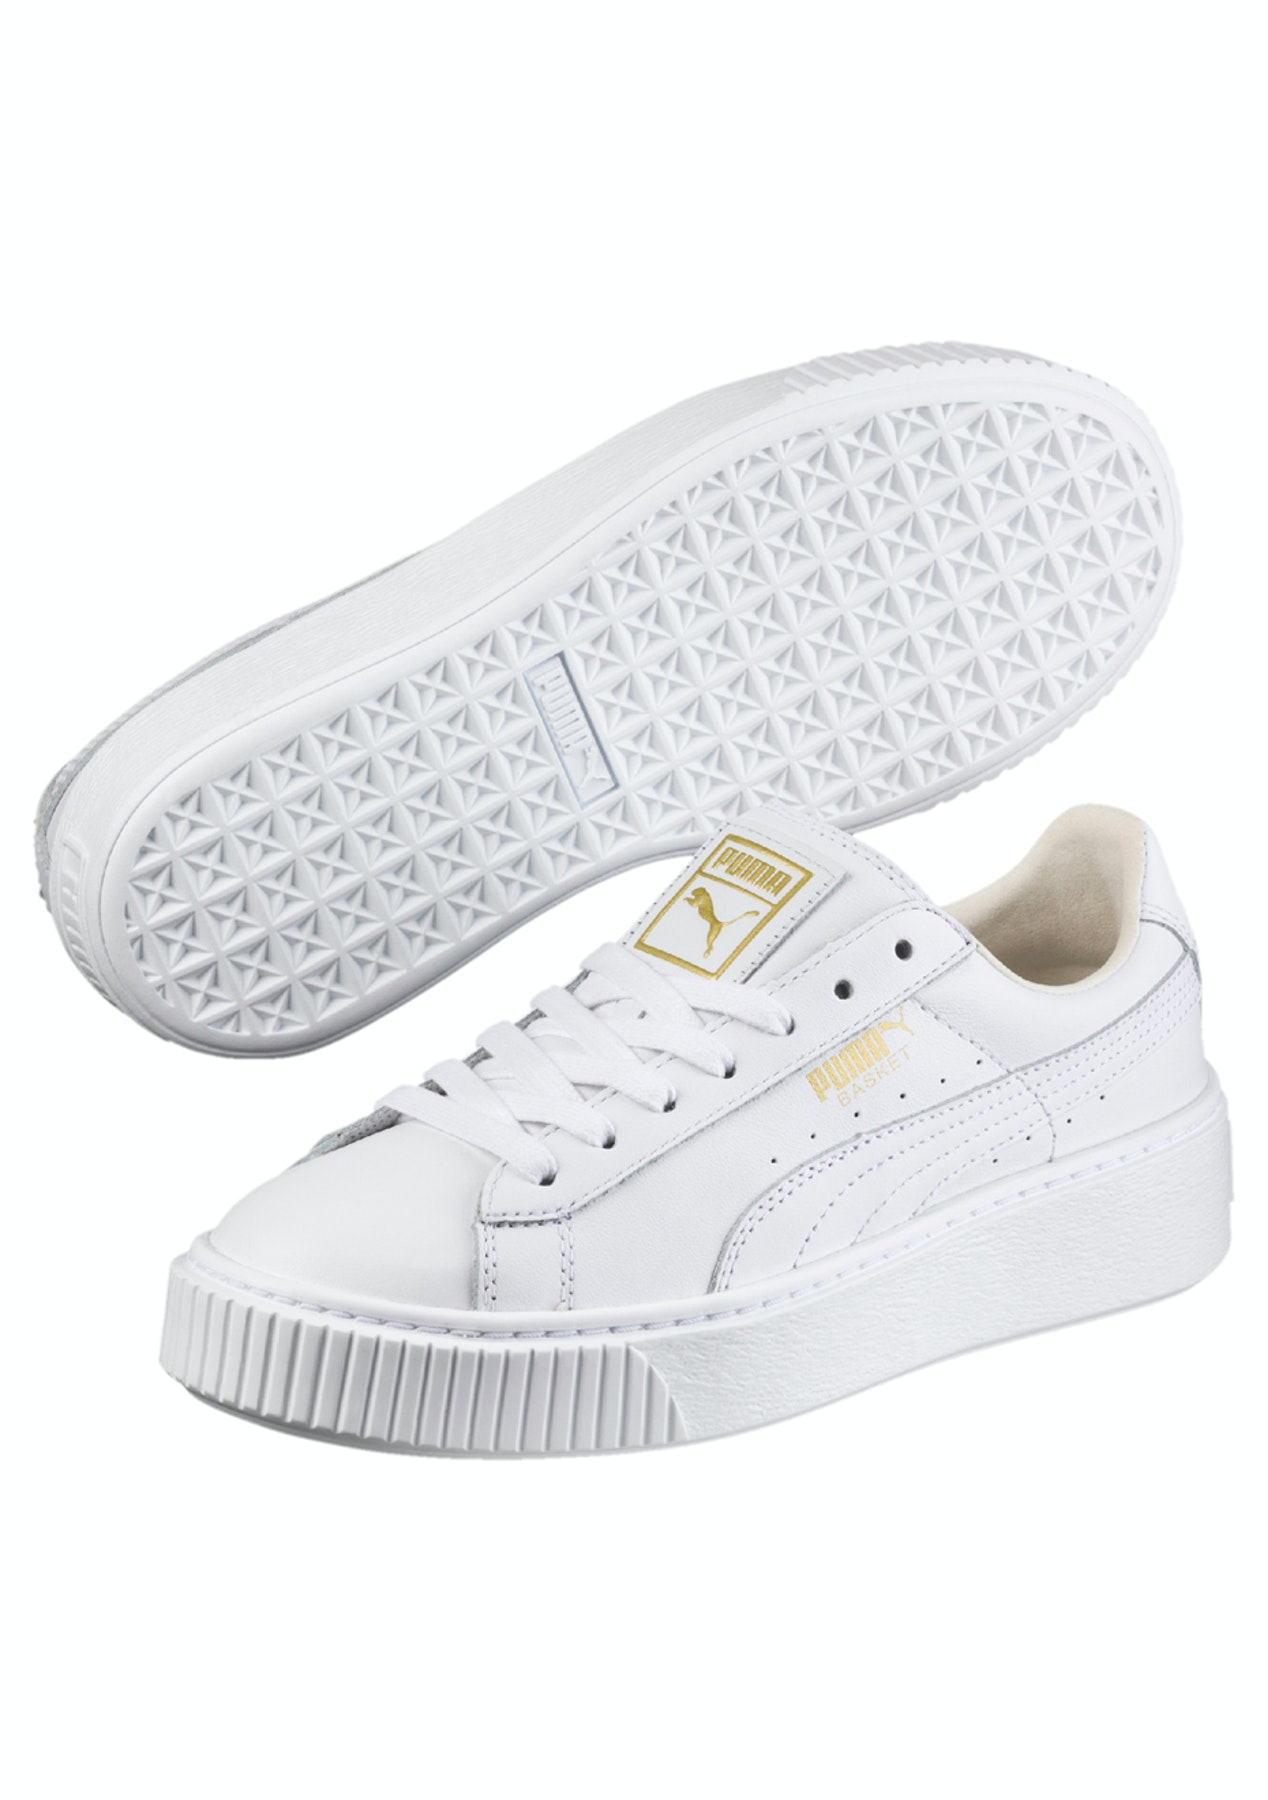 8cc0b604bd1884 Puma Womens - Basket Platform Core White - Gold - Under  100 PUMA Mega Sale  - Onceit